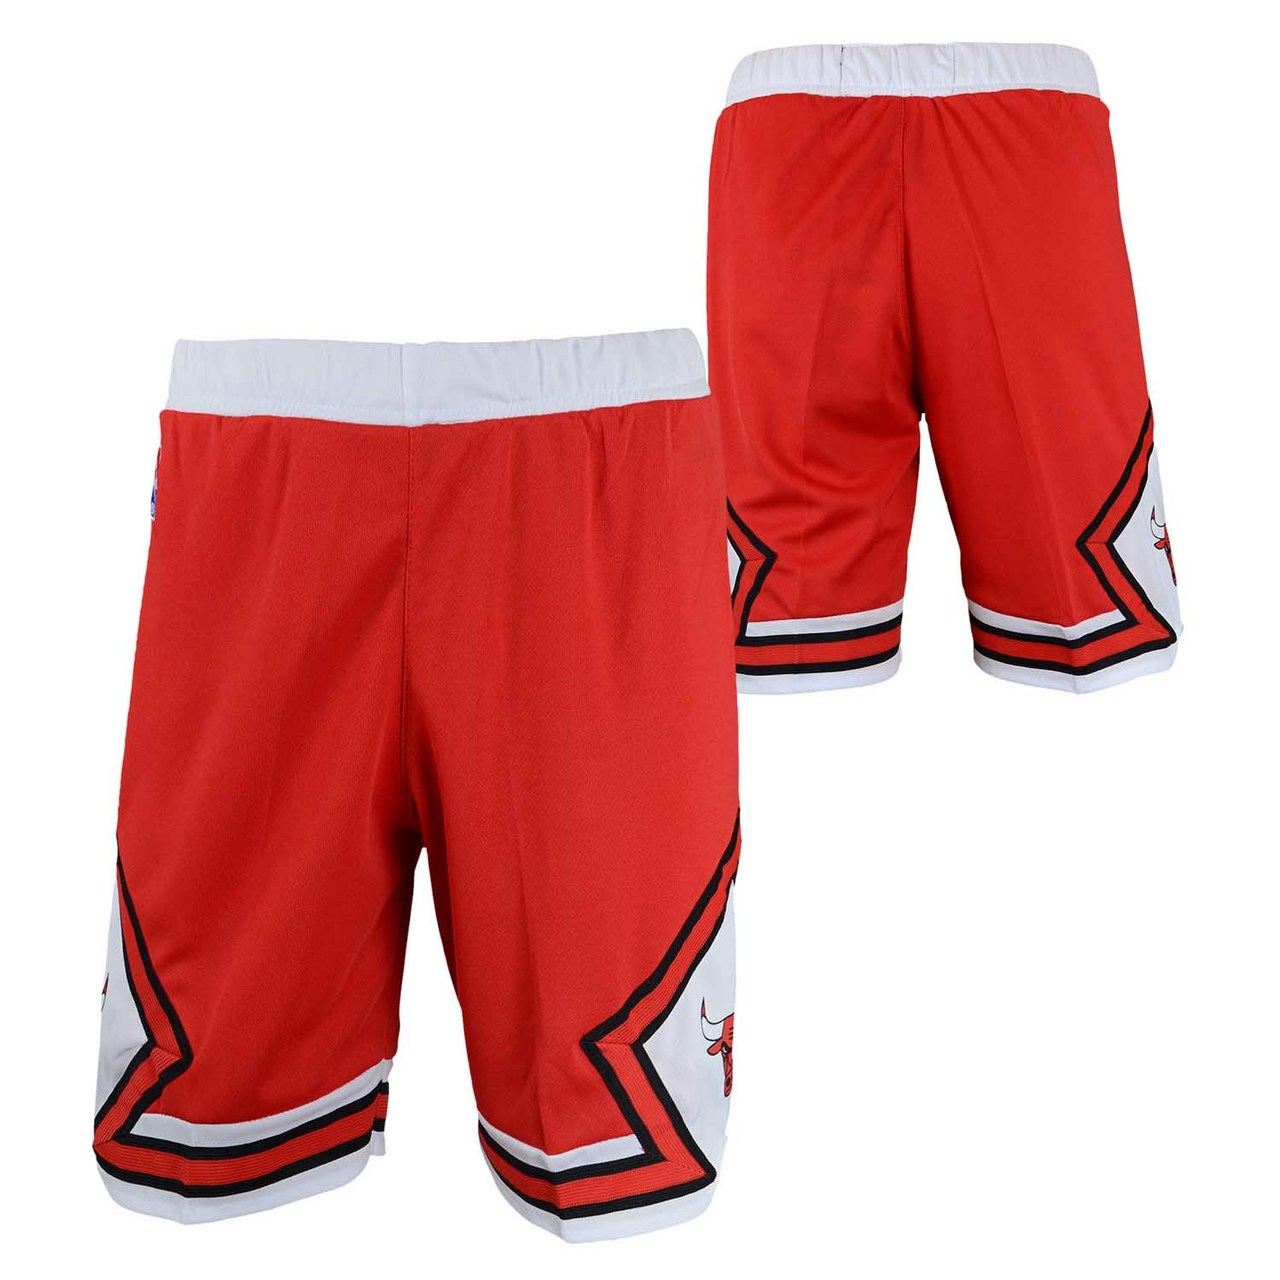 Chicago Bulls Youth NBA Replica Road Shorts  - Red